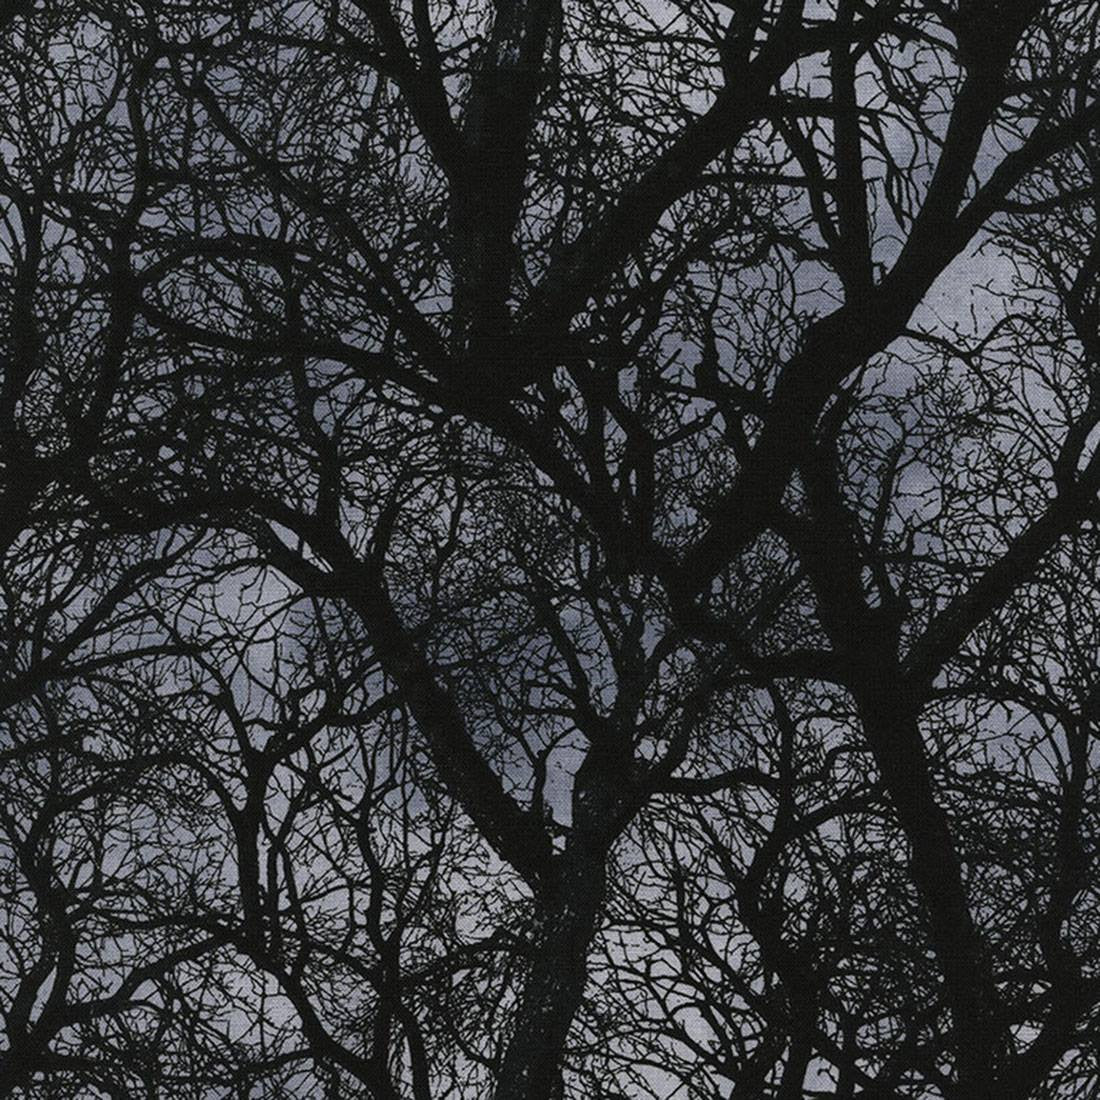 Wicked Eve Dark Tree Branches Cotton